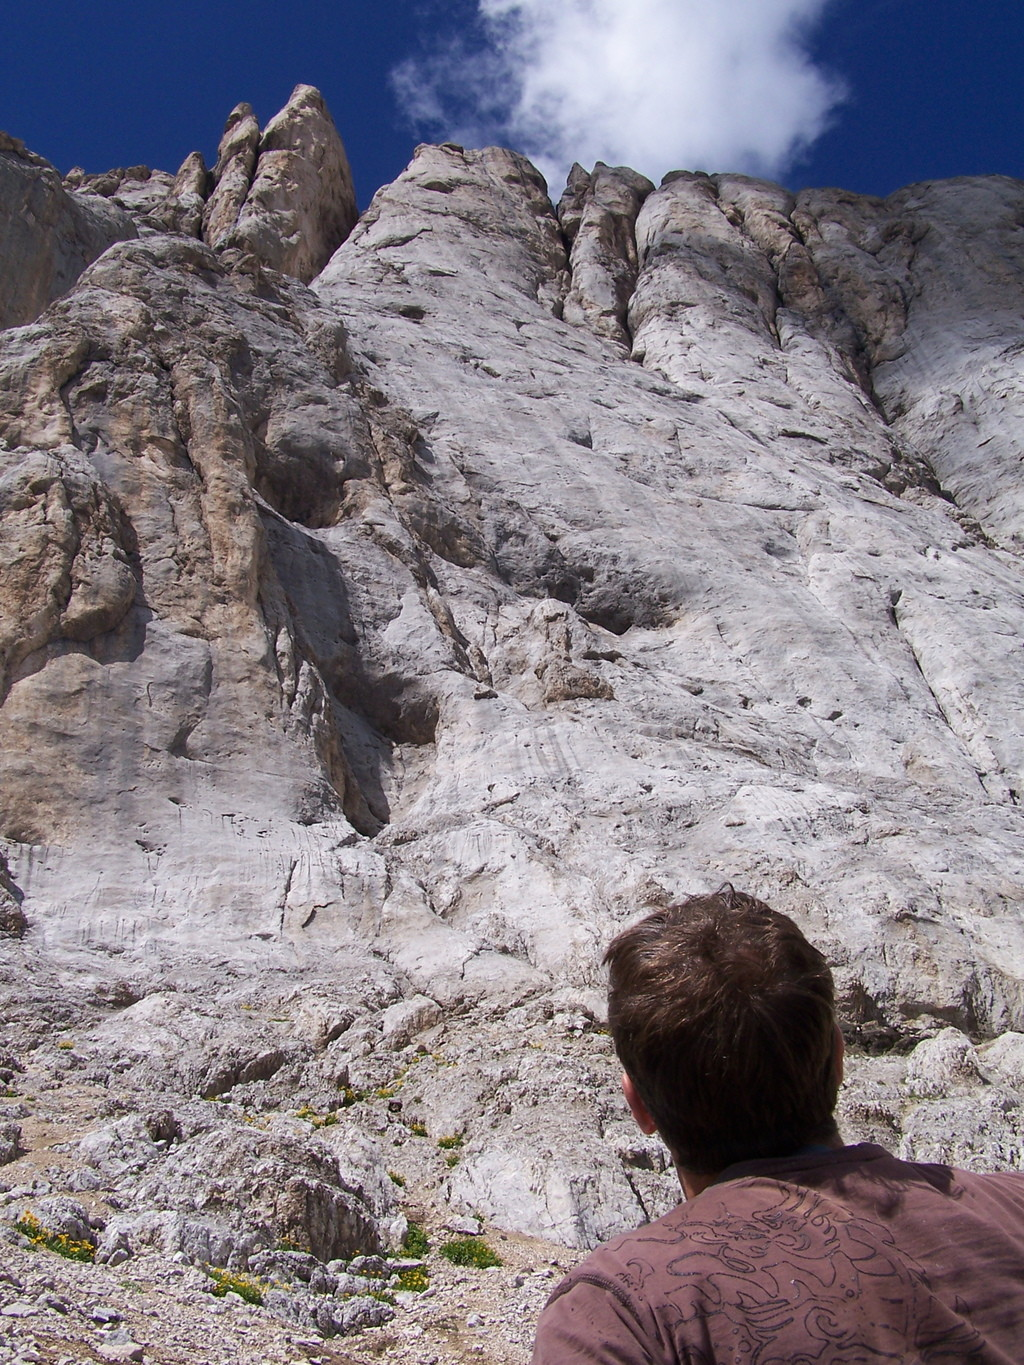 The route from large ledge.